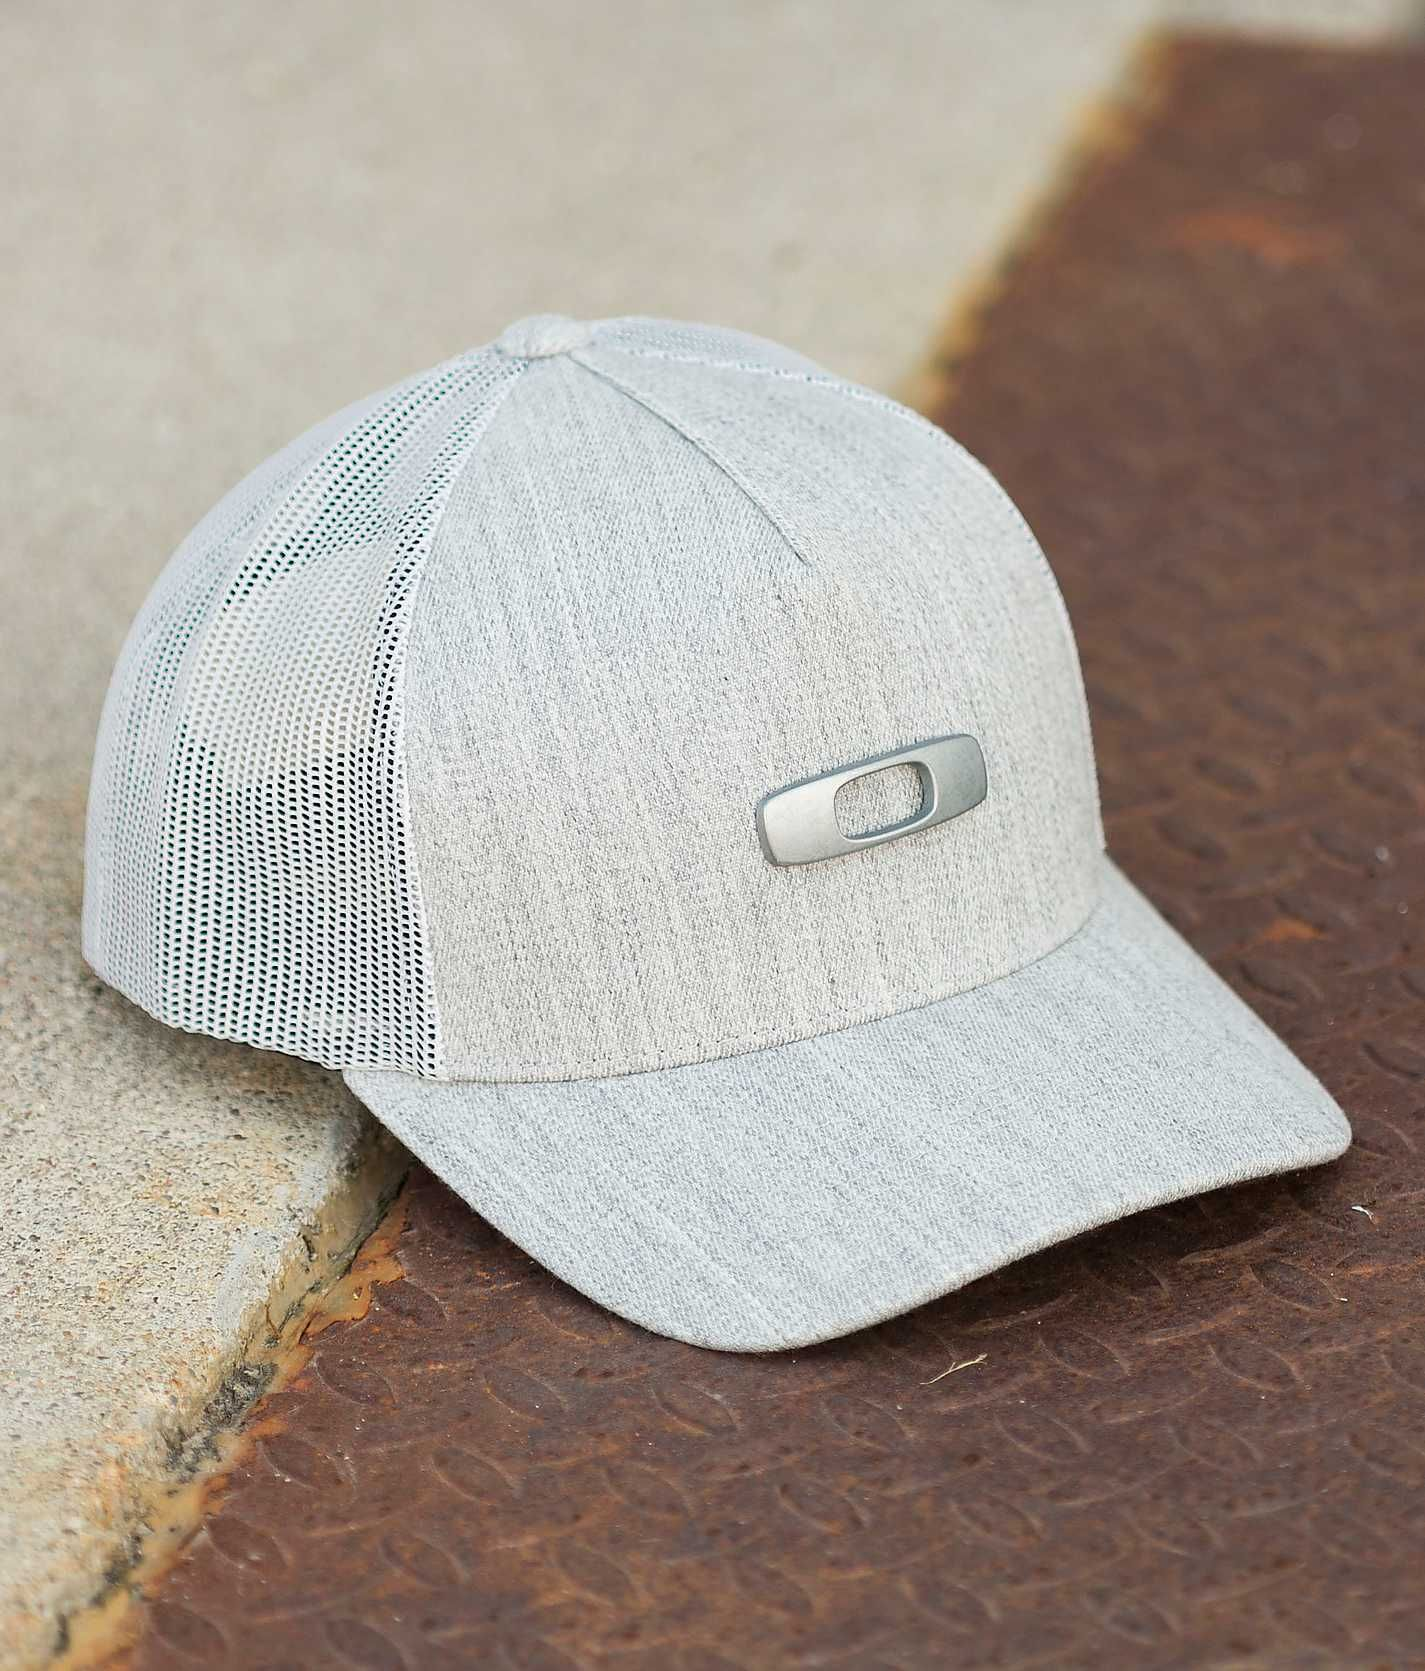 c335b6e4 Oakley Halifax Trucker Hat - Men's Hats | Buckle | Stuff I Like ...